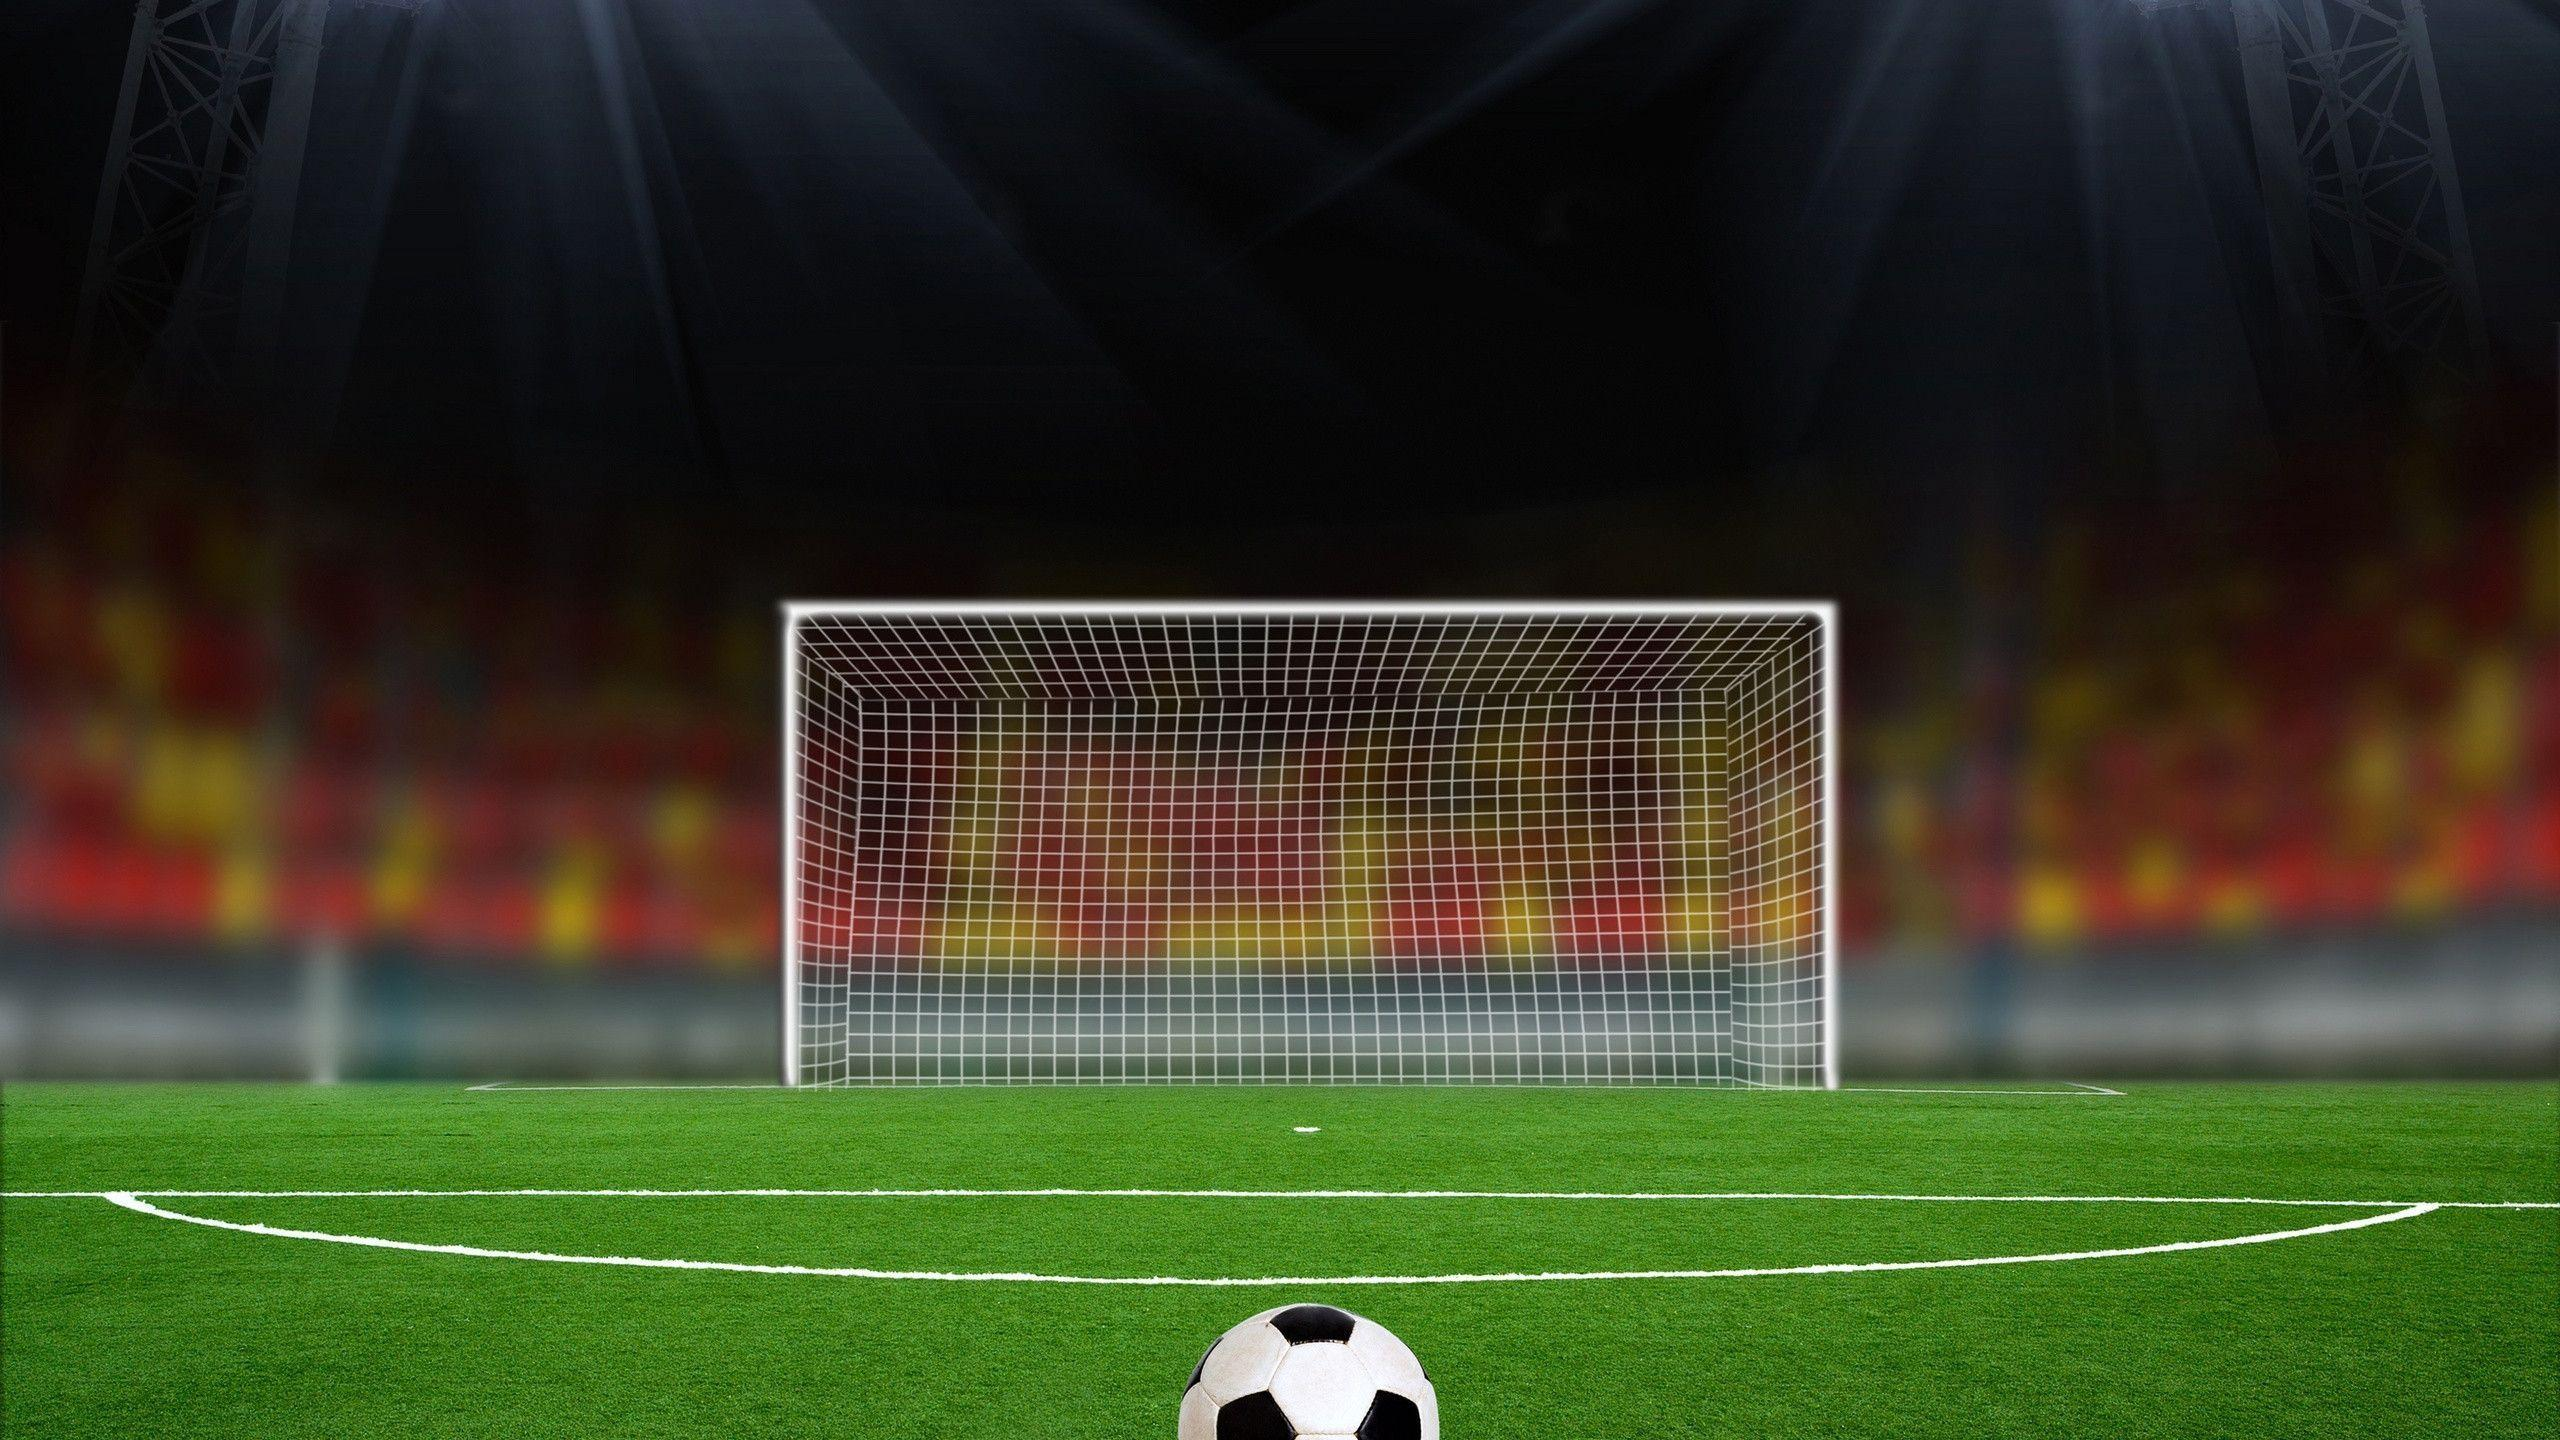 Football Wallpapers - Wallpaper Cave